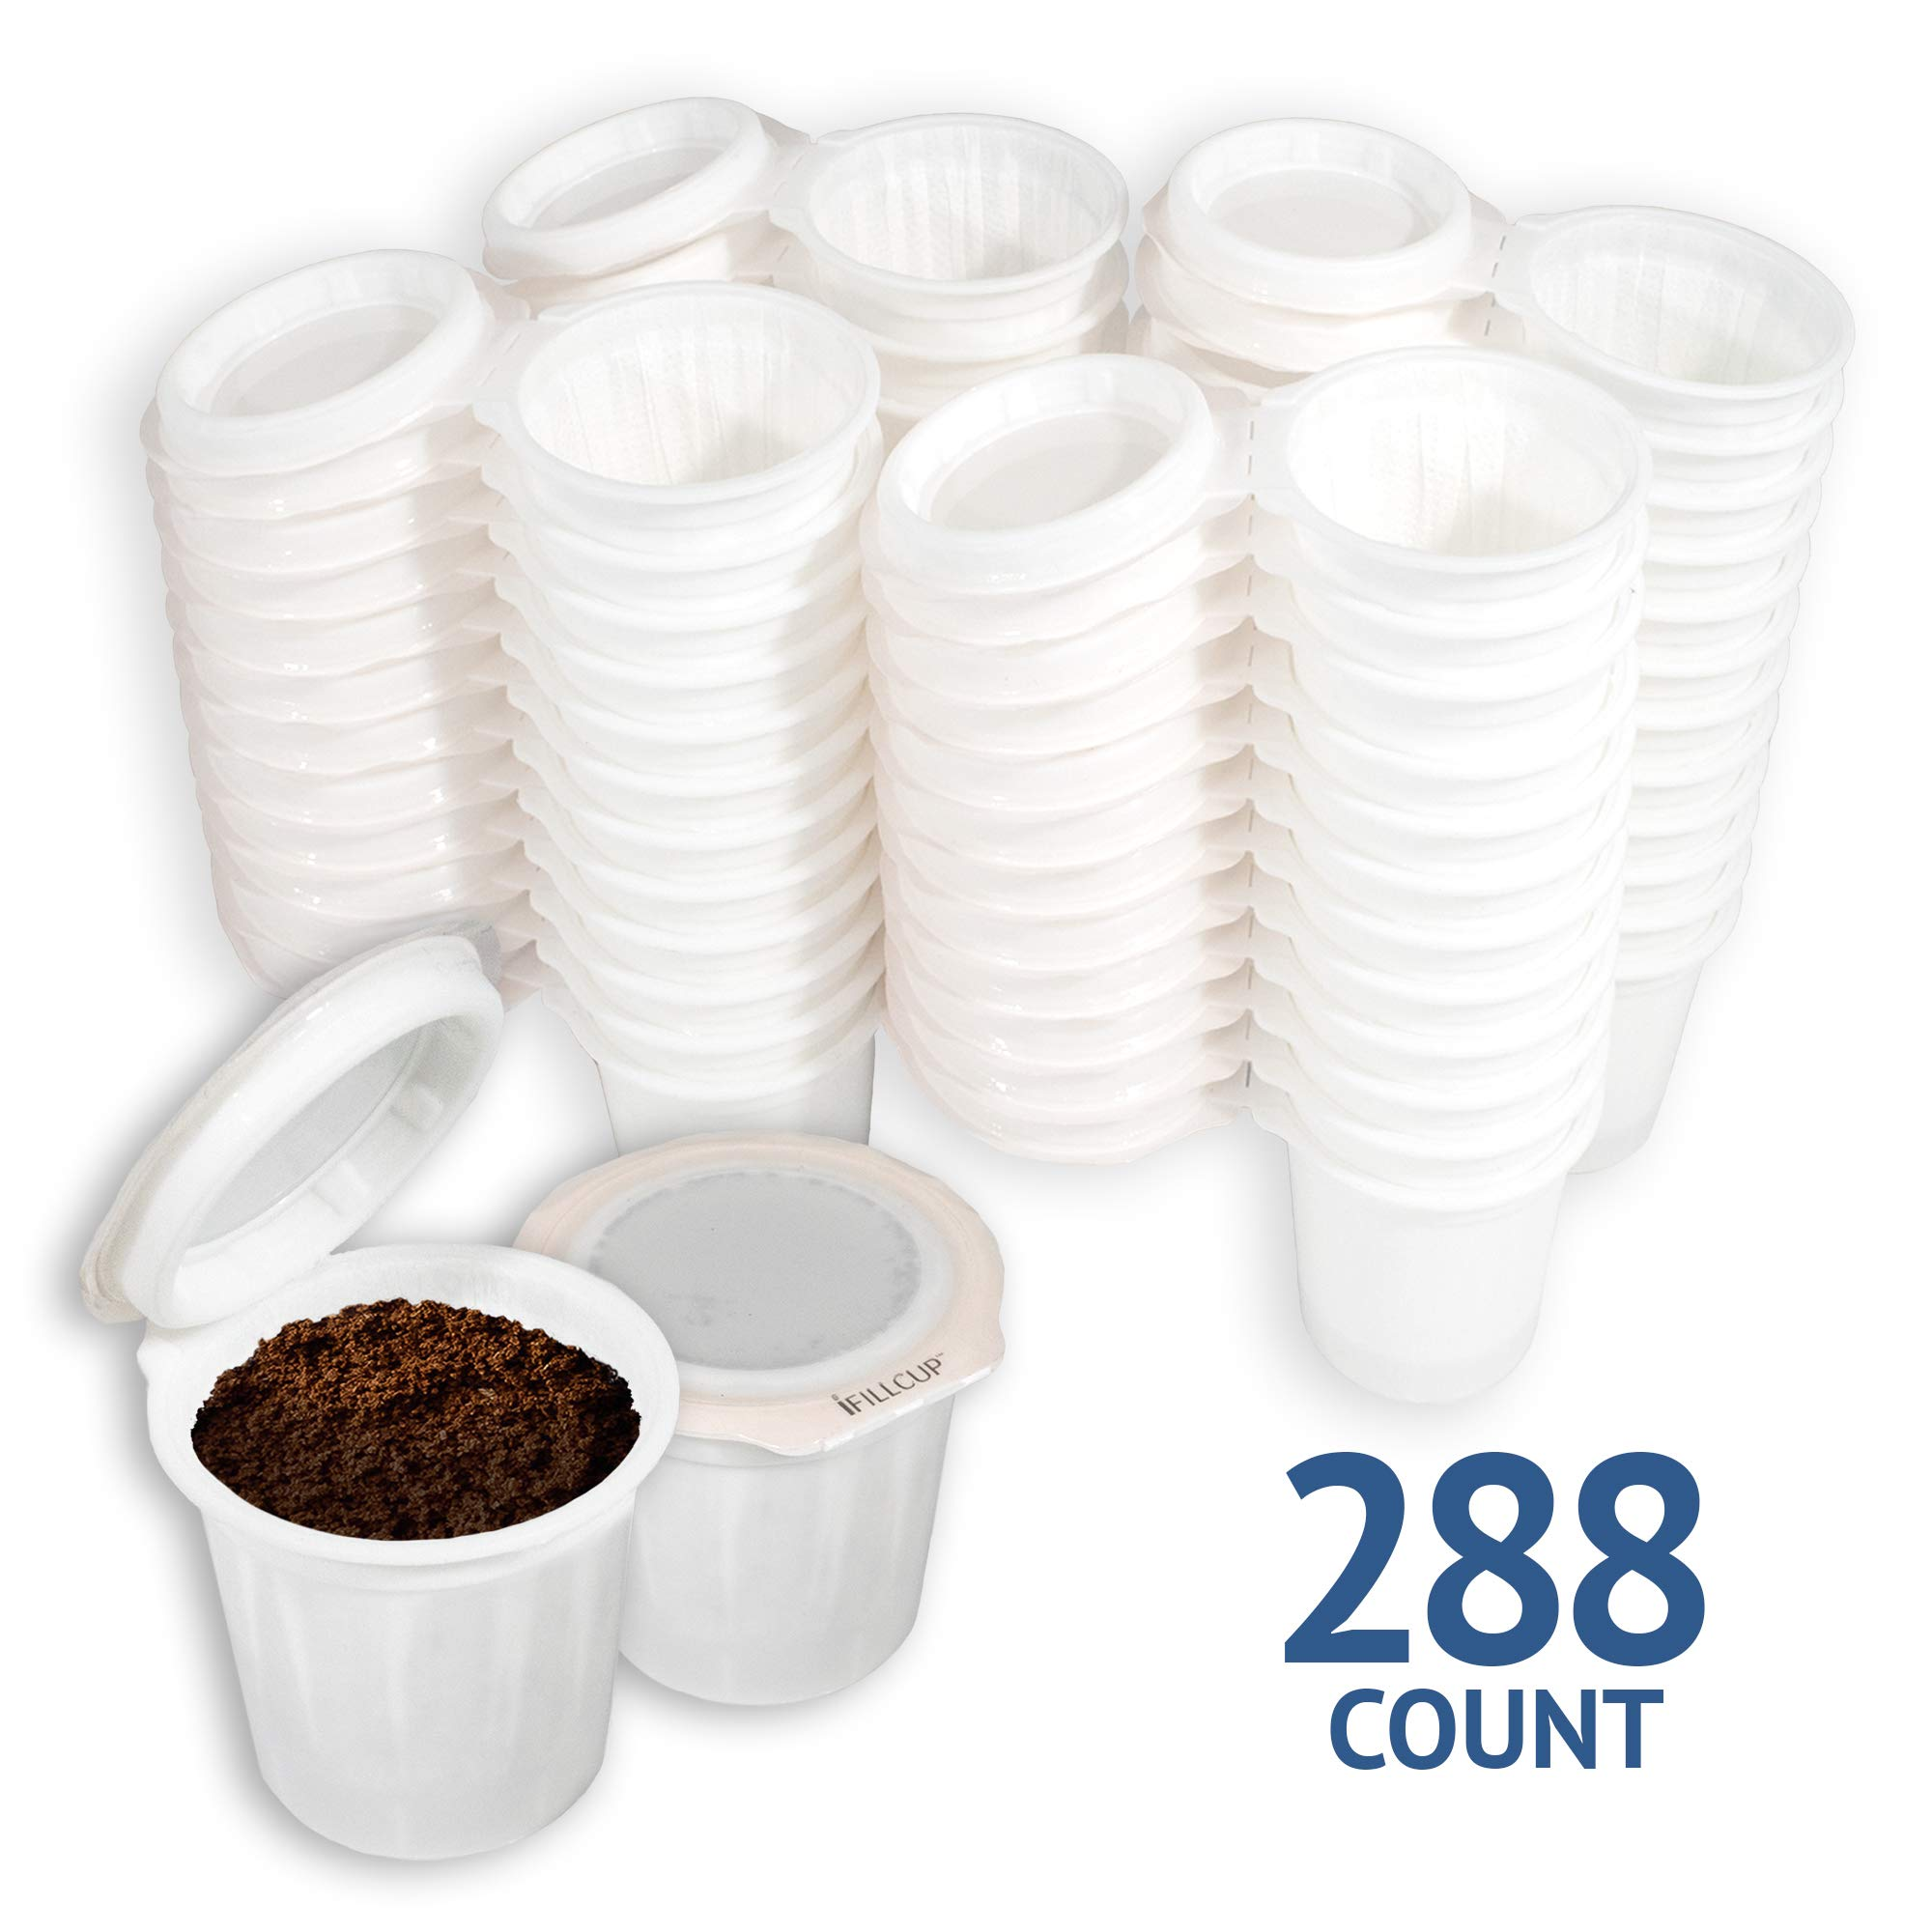 iFillCup pre-assembled Single Serve, fill your own Pods. 100% recyclable for use in all k cup brewers including 1.0 & 2.0 Keurig. 288 iFill Cup airtight seal in freshness pods.